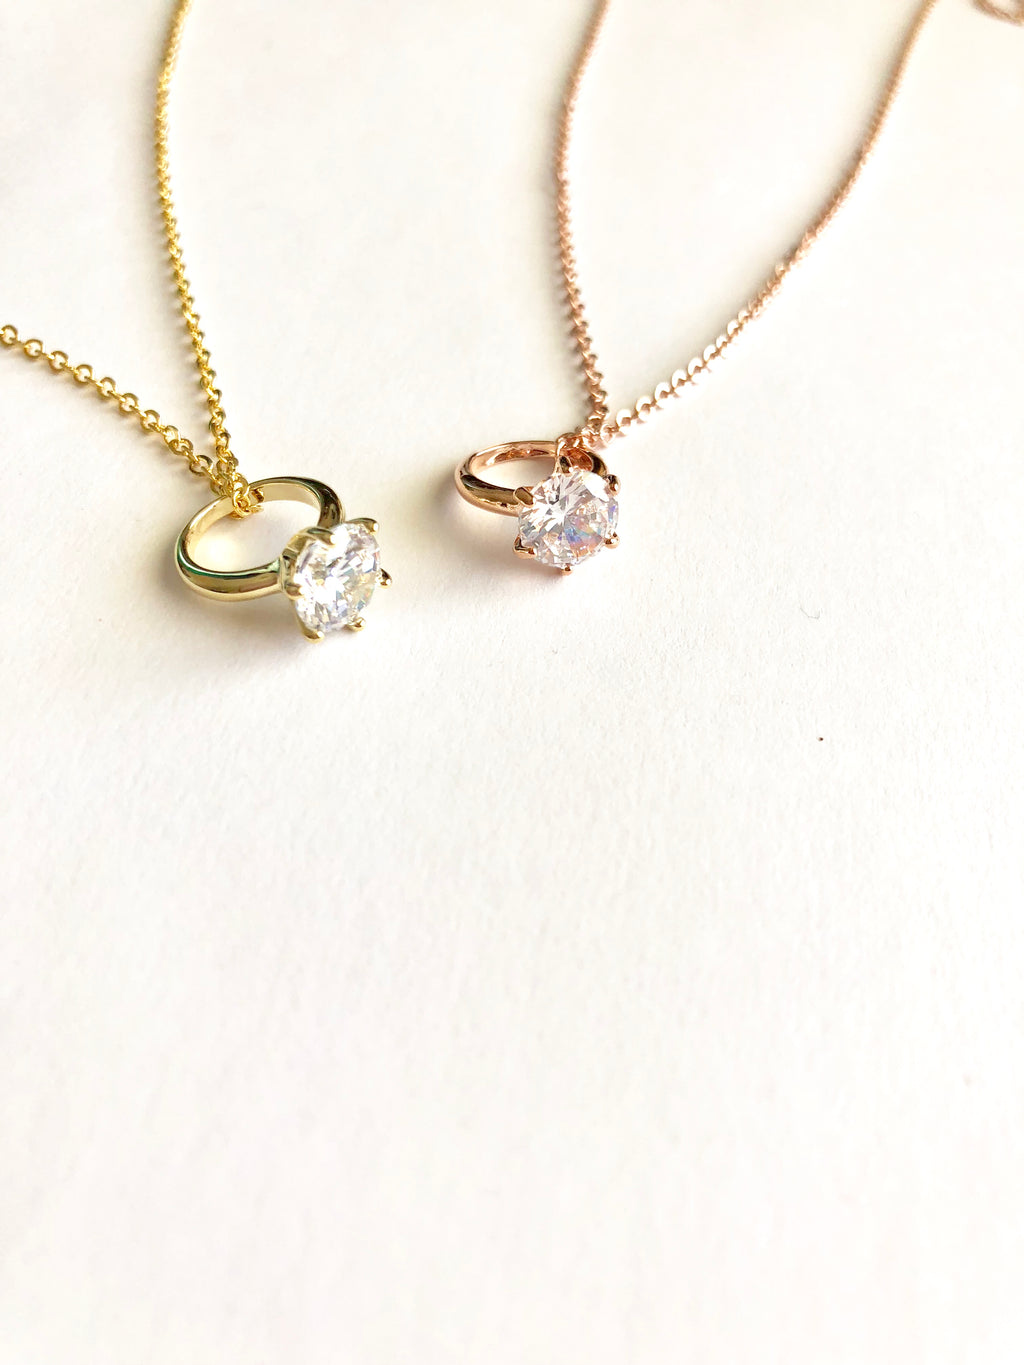 Diamond Dainty Necklace - Shop Kindred Together